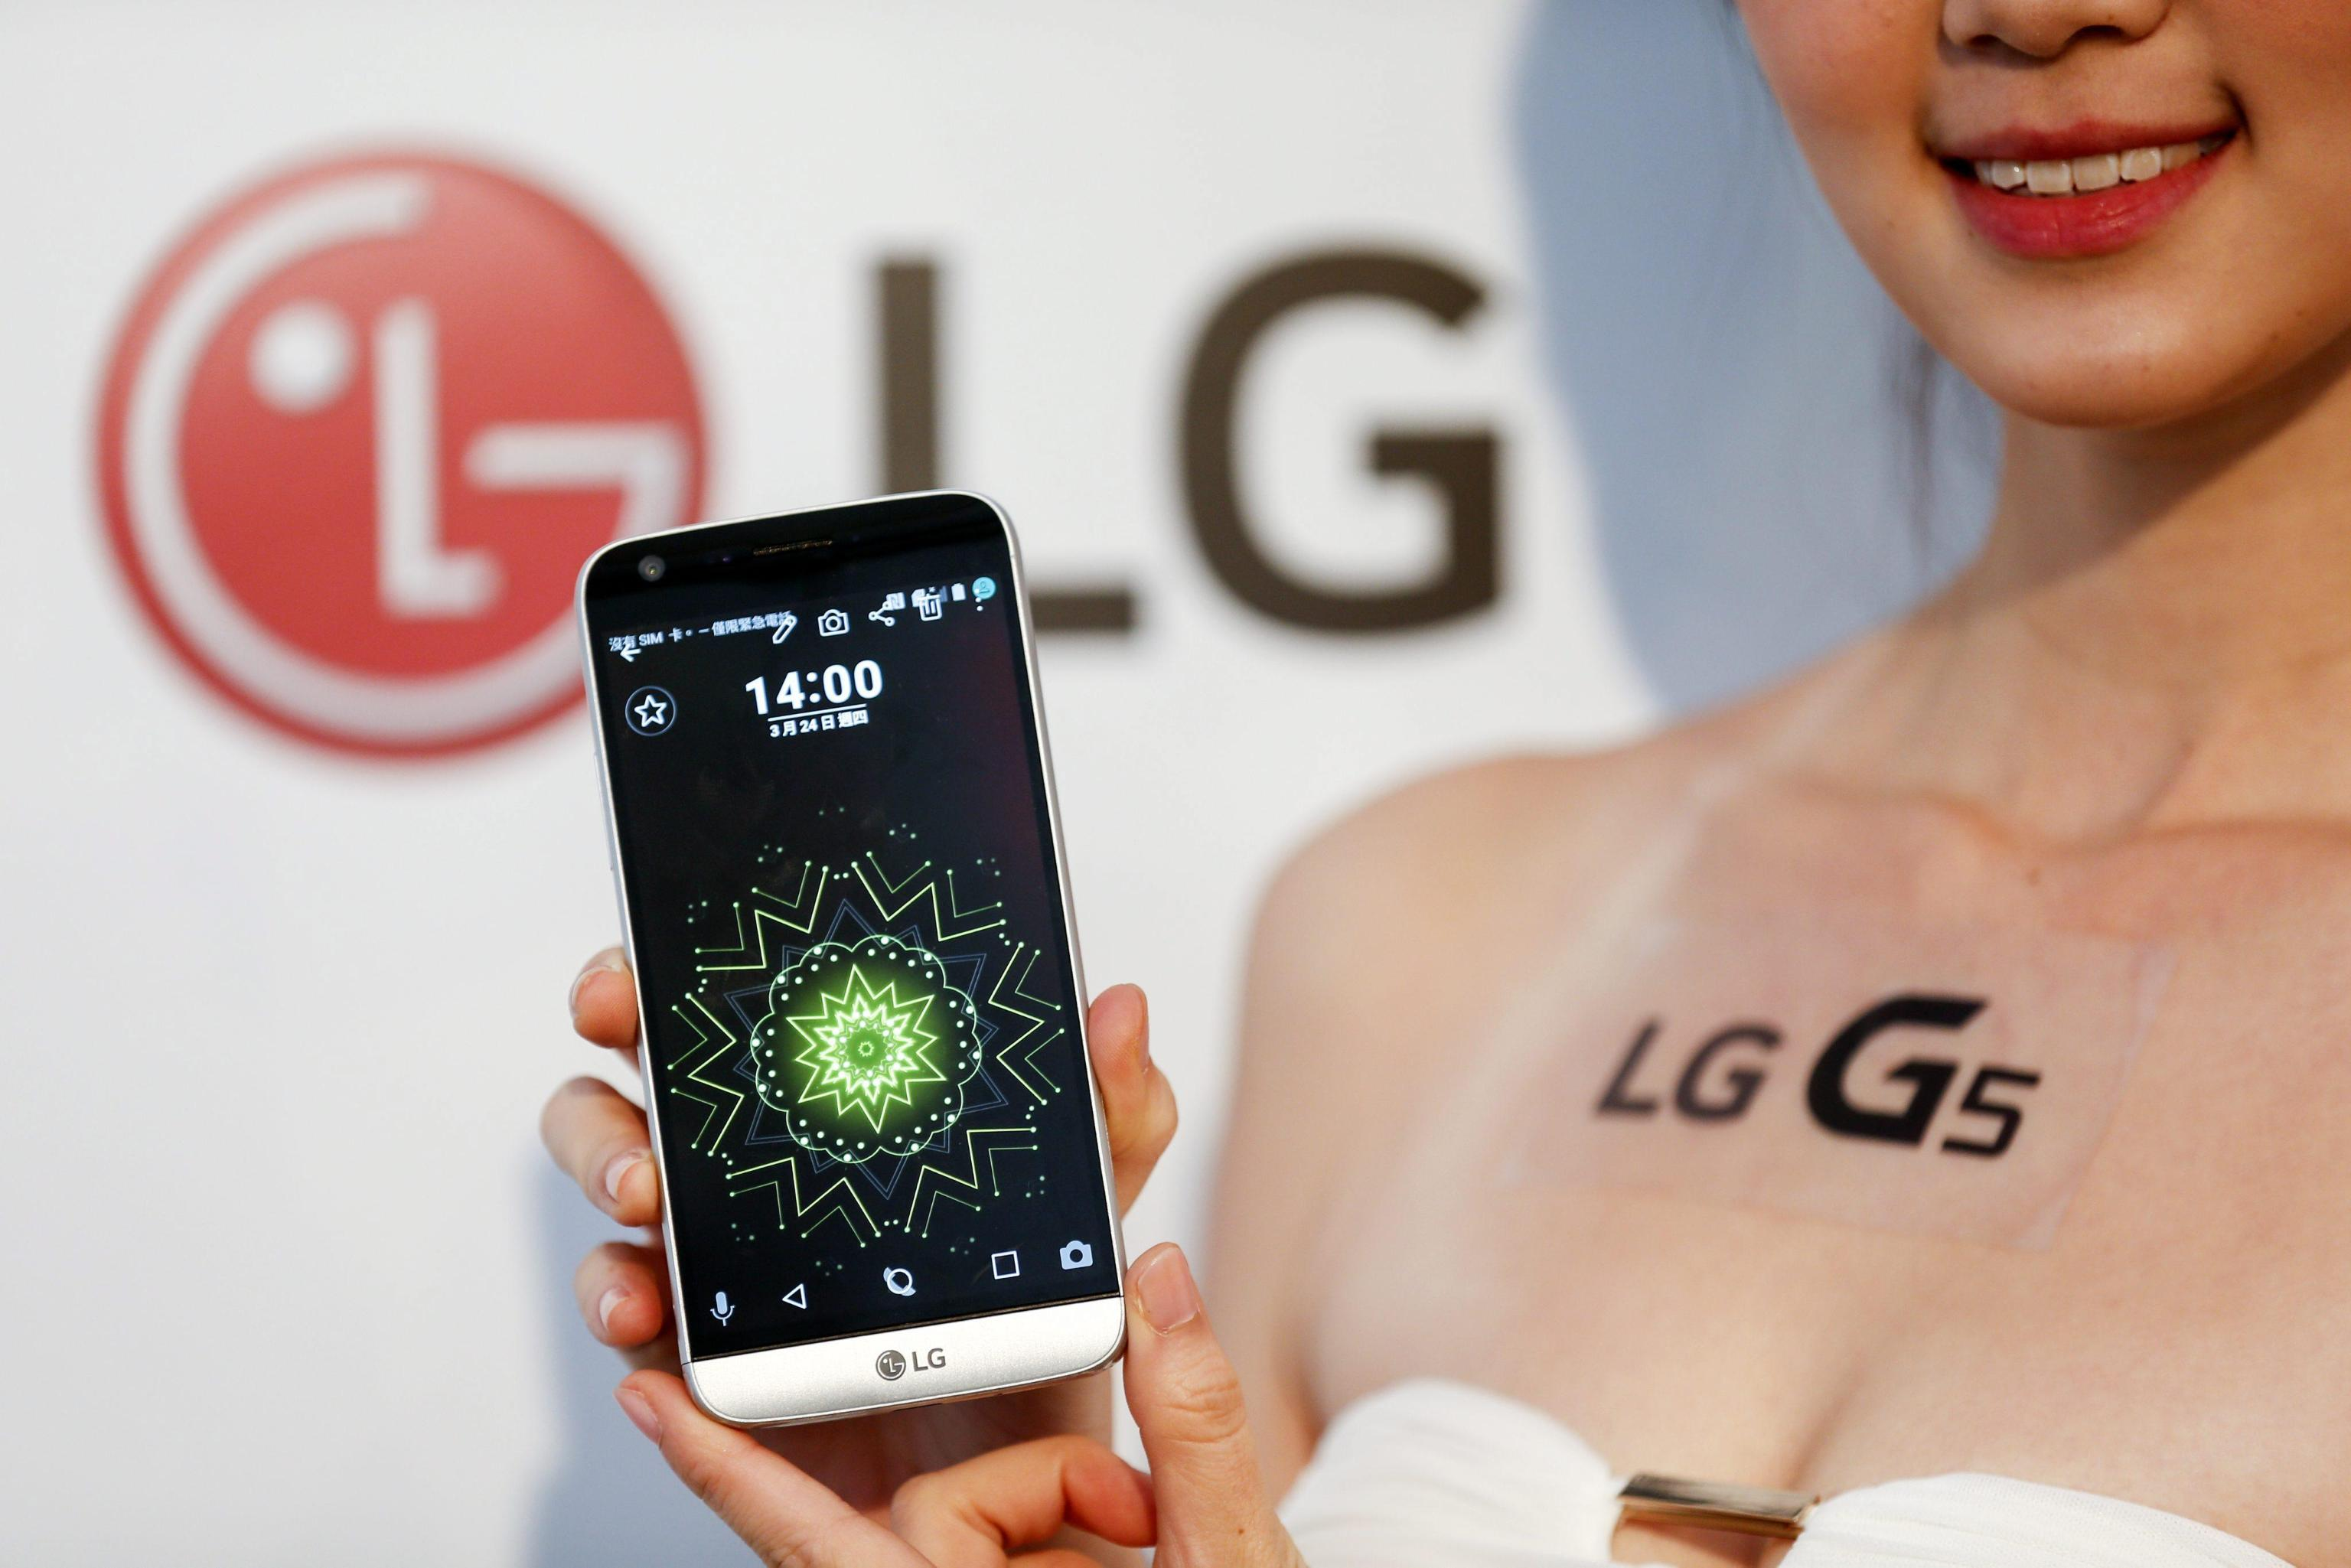 LG G5 promotional show in Taipei